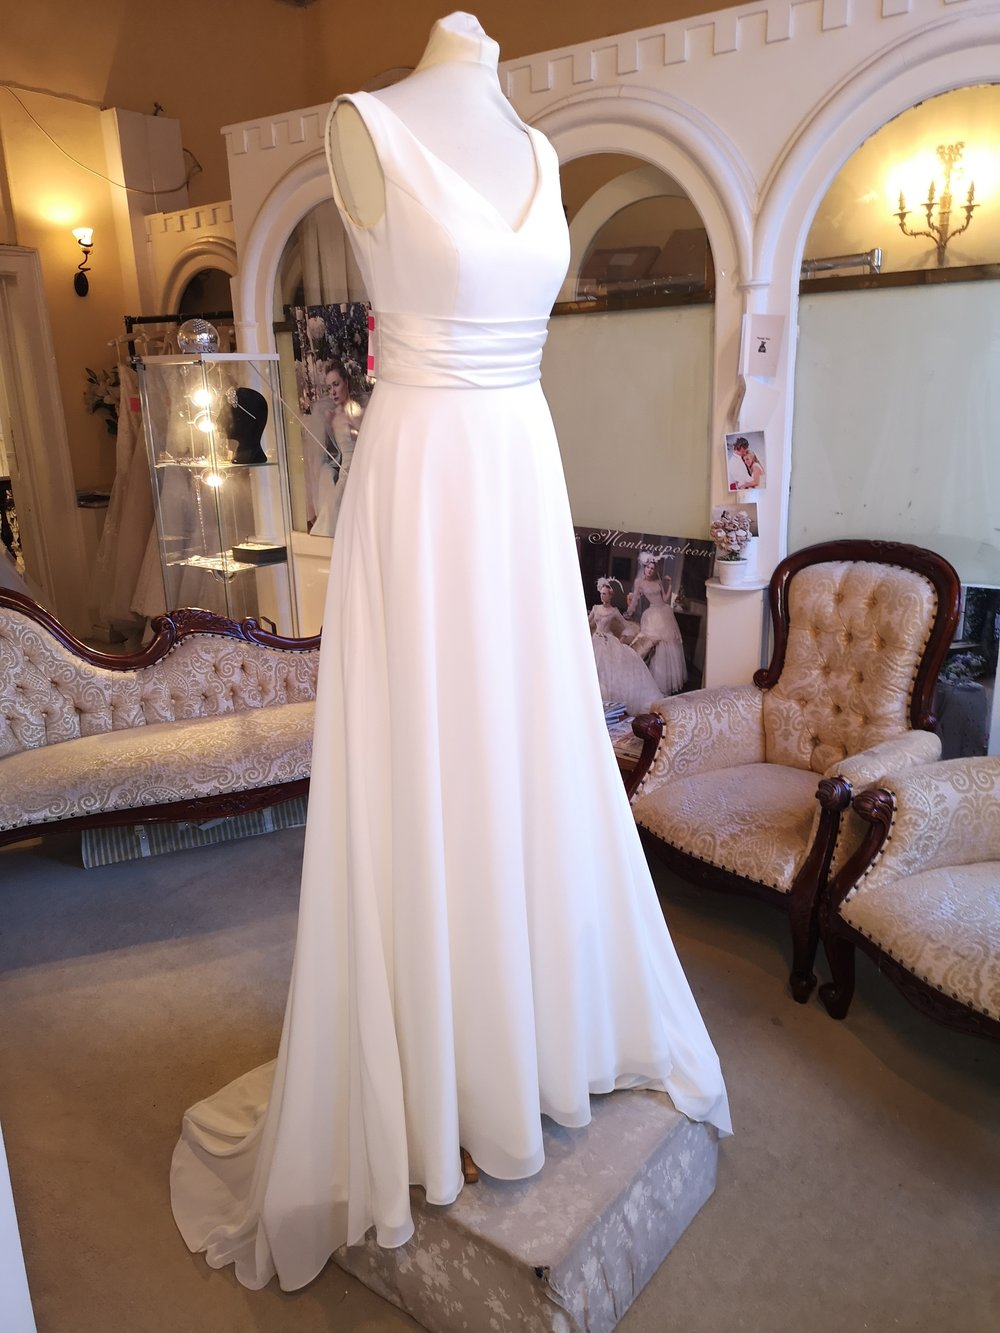 WHITE ROSE CHIFFON A LINE DRESS WITH SATIN BELT DETAIL. V BACK WITH BUTTONS  WAS €1,395 NOW €799  COLOUR : IVORY  SIZE : 10